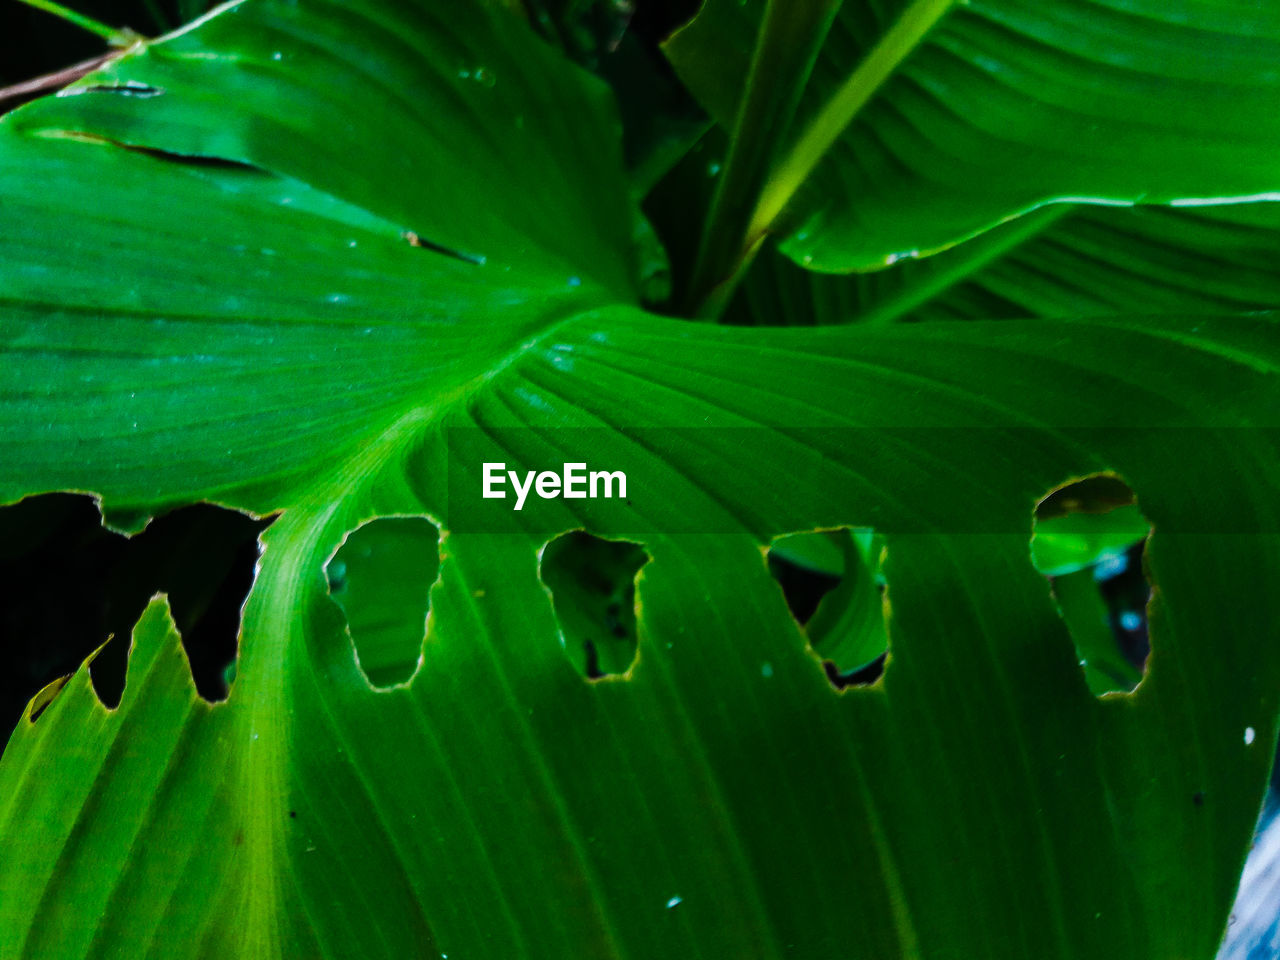 green color, leaf, growth, plant part, close-up, plant, beauty in nature, no people, nature, day, freshness, water, leaves, focus on foreground, drop, full frame, outdoors, green, selective focus, purity, raindrop, dew